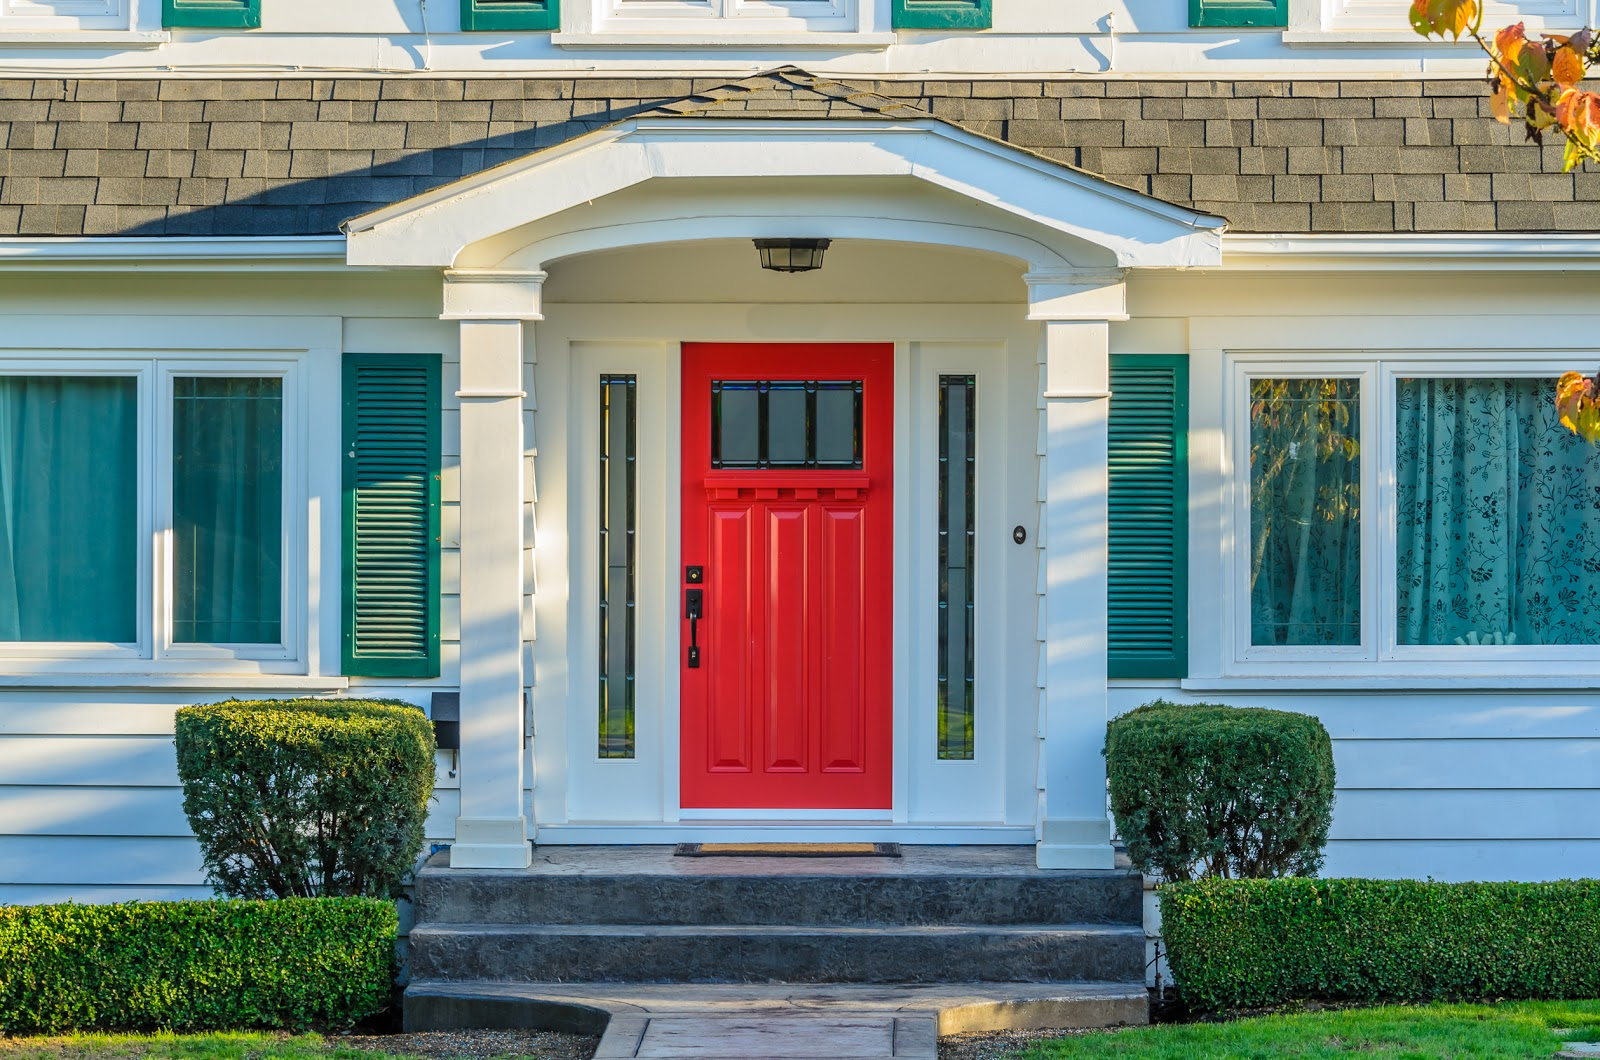 A red front door of a house